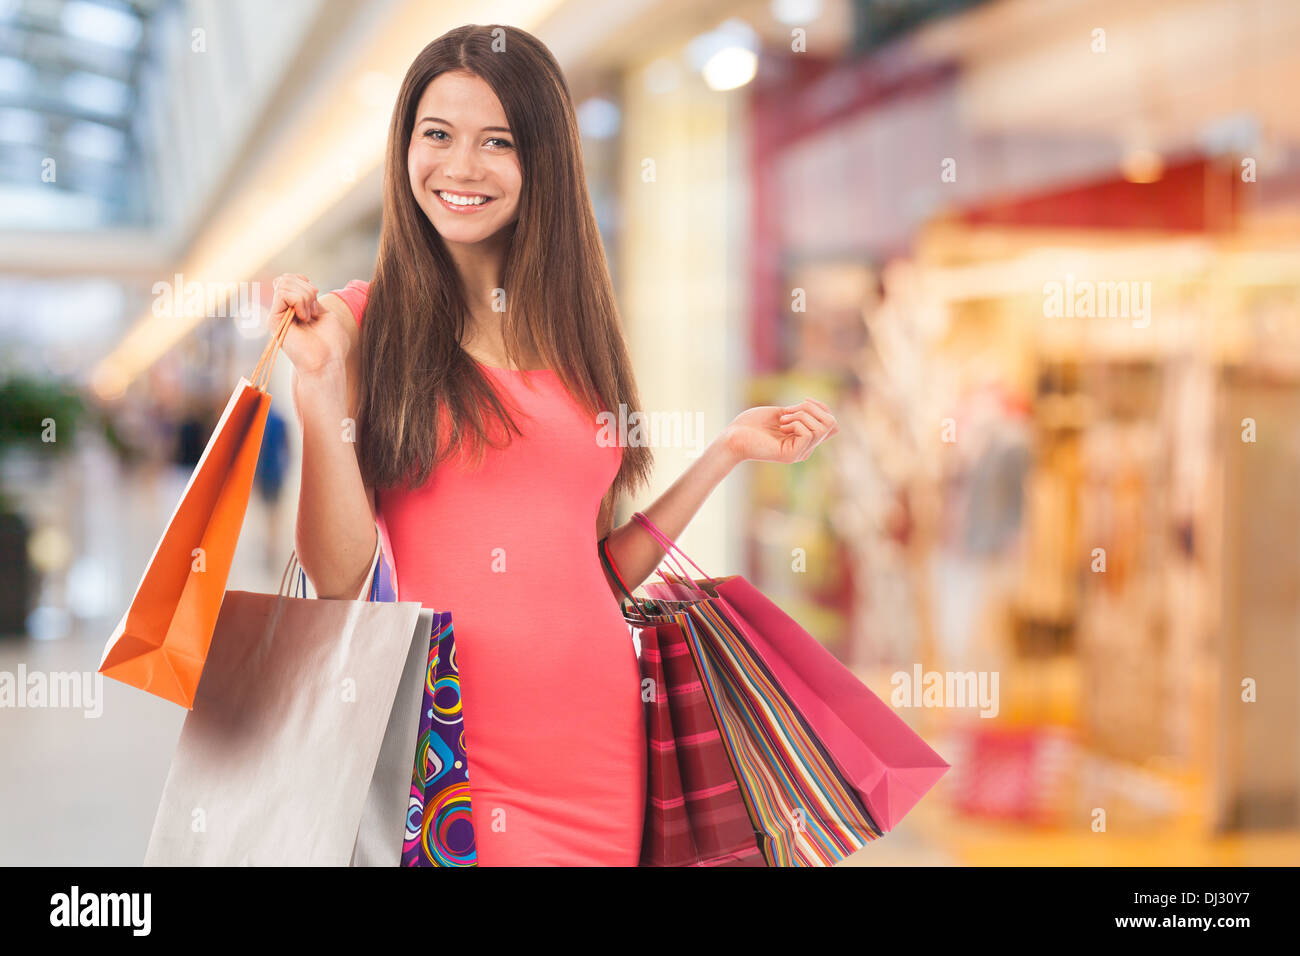 Portrait of a nice young woman holding shopping bags - Stock Image